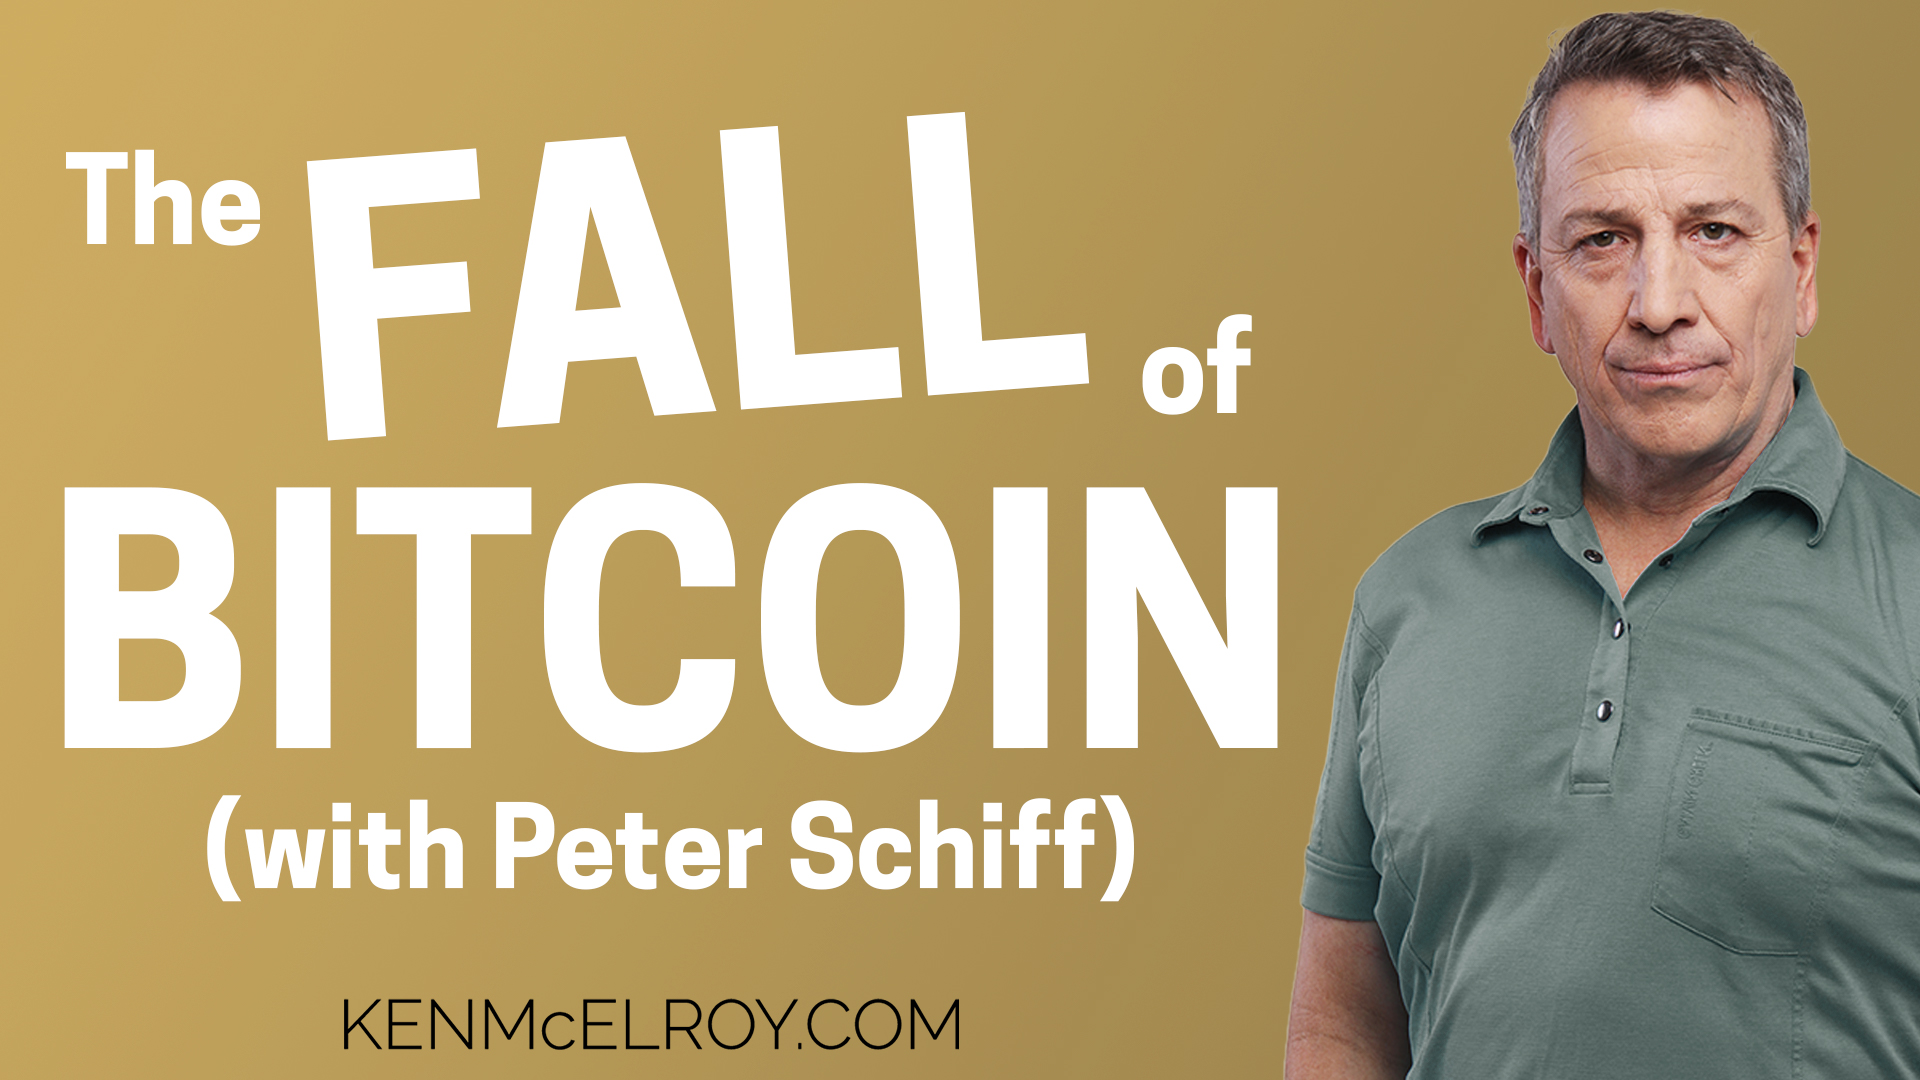 2021 6 2 KM Peter Schiff Podcast 2 Thumbnail | Ken McElroy Image